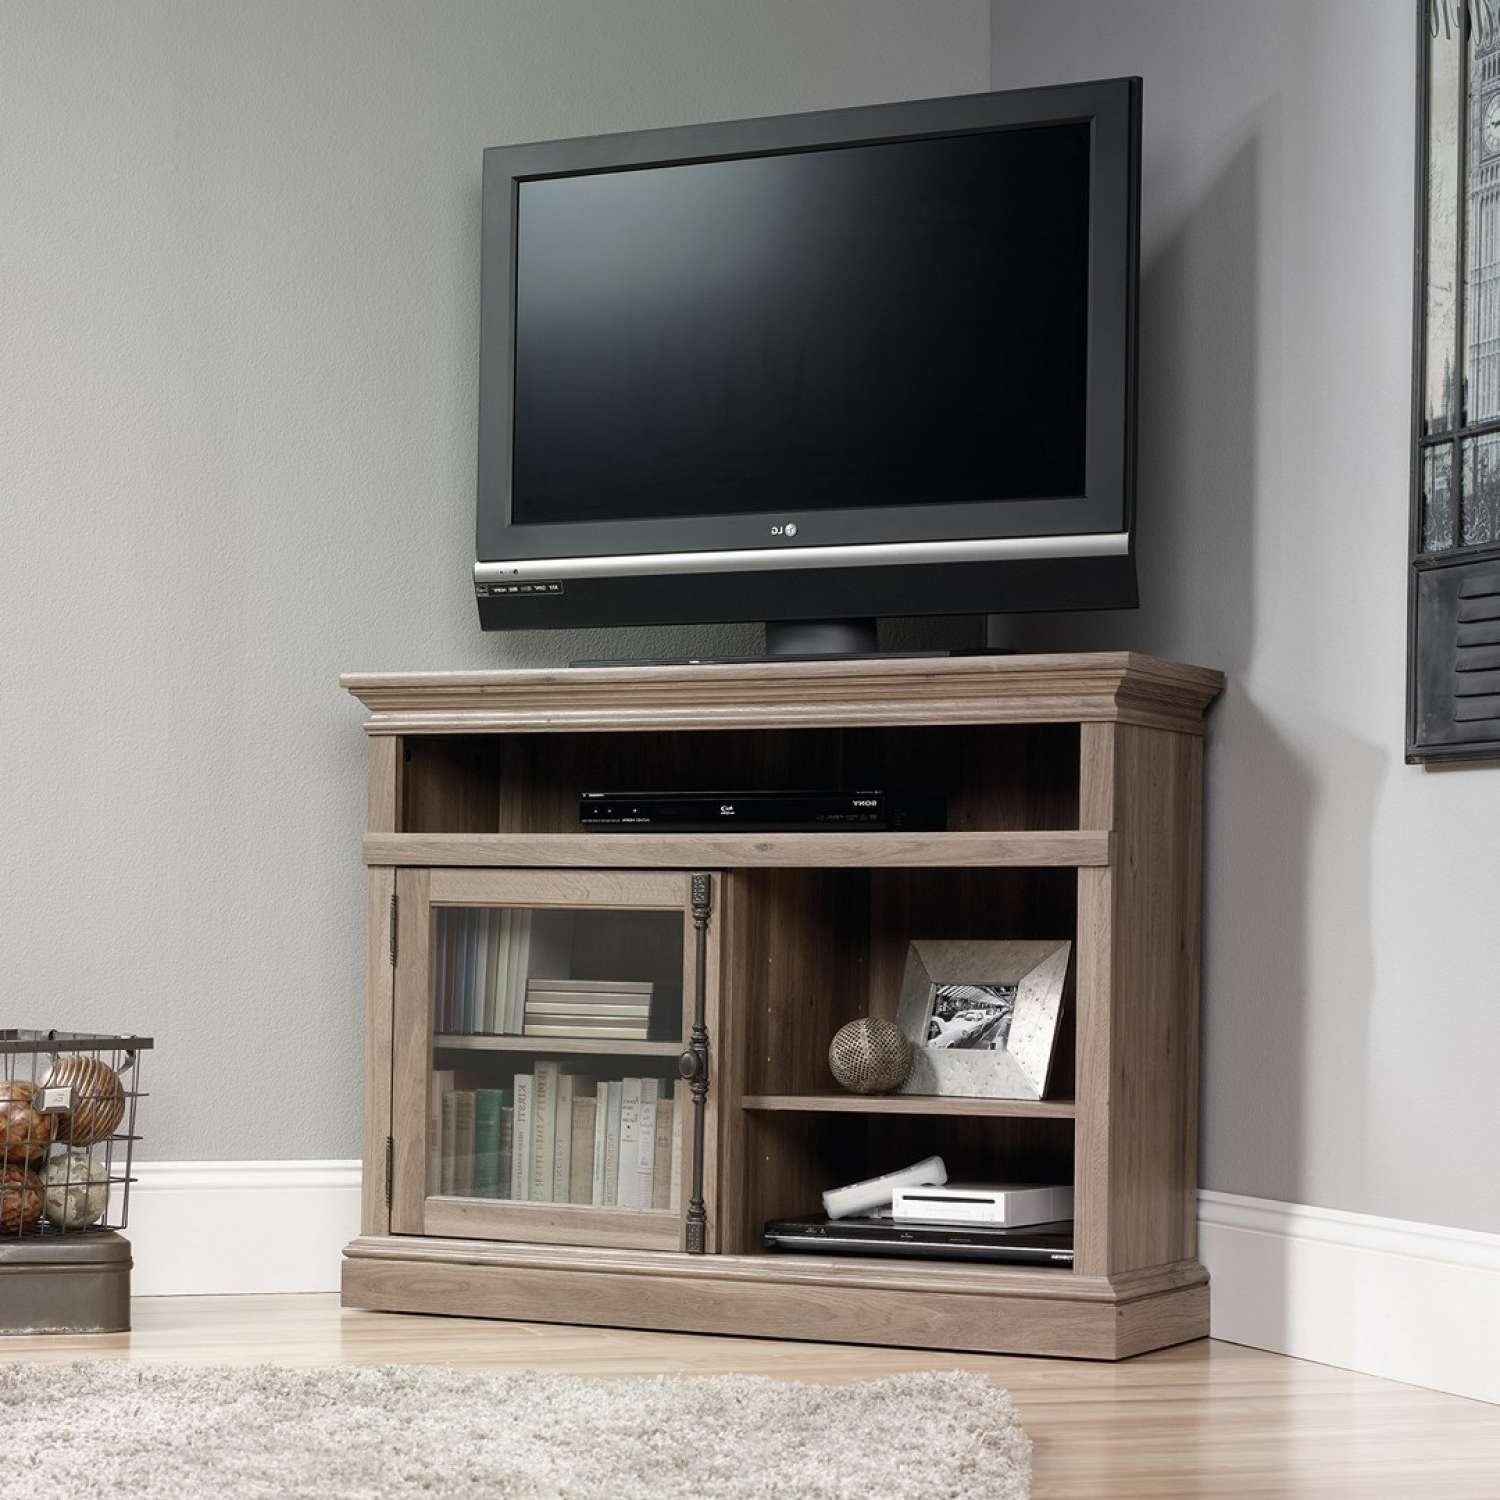 Oak Effect Corner Tv Standtipton Furniture Throughout Oak Effect Corner Tv Stands (View 4 of 15)